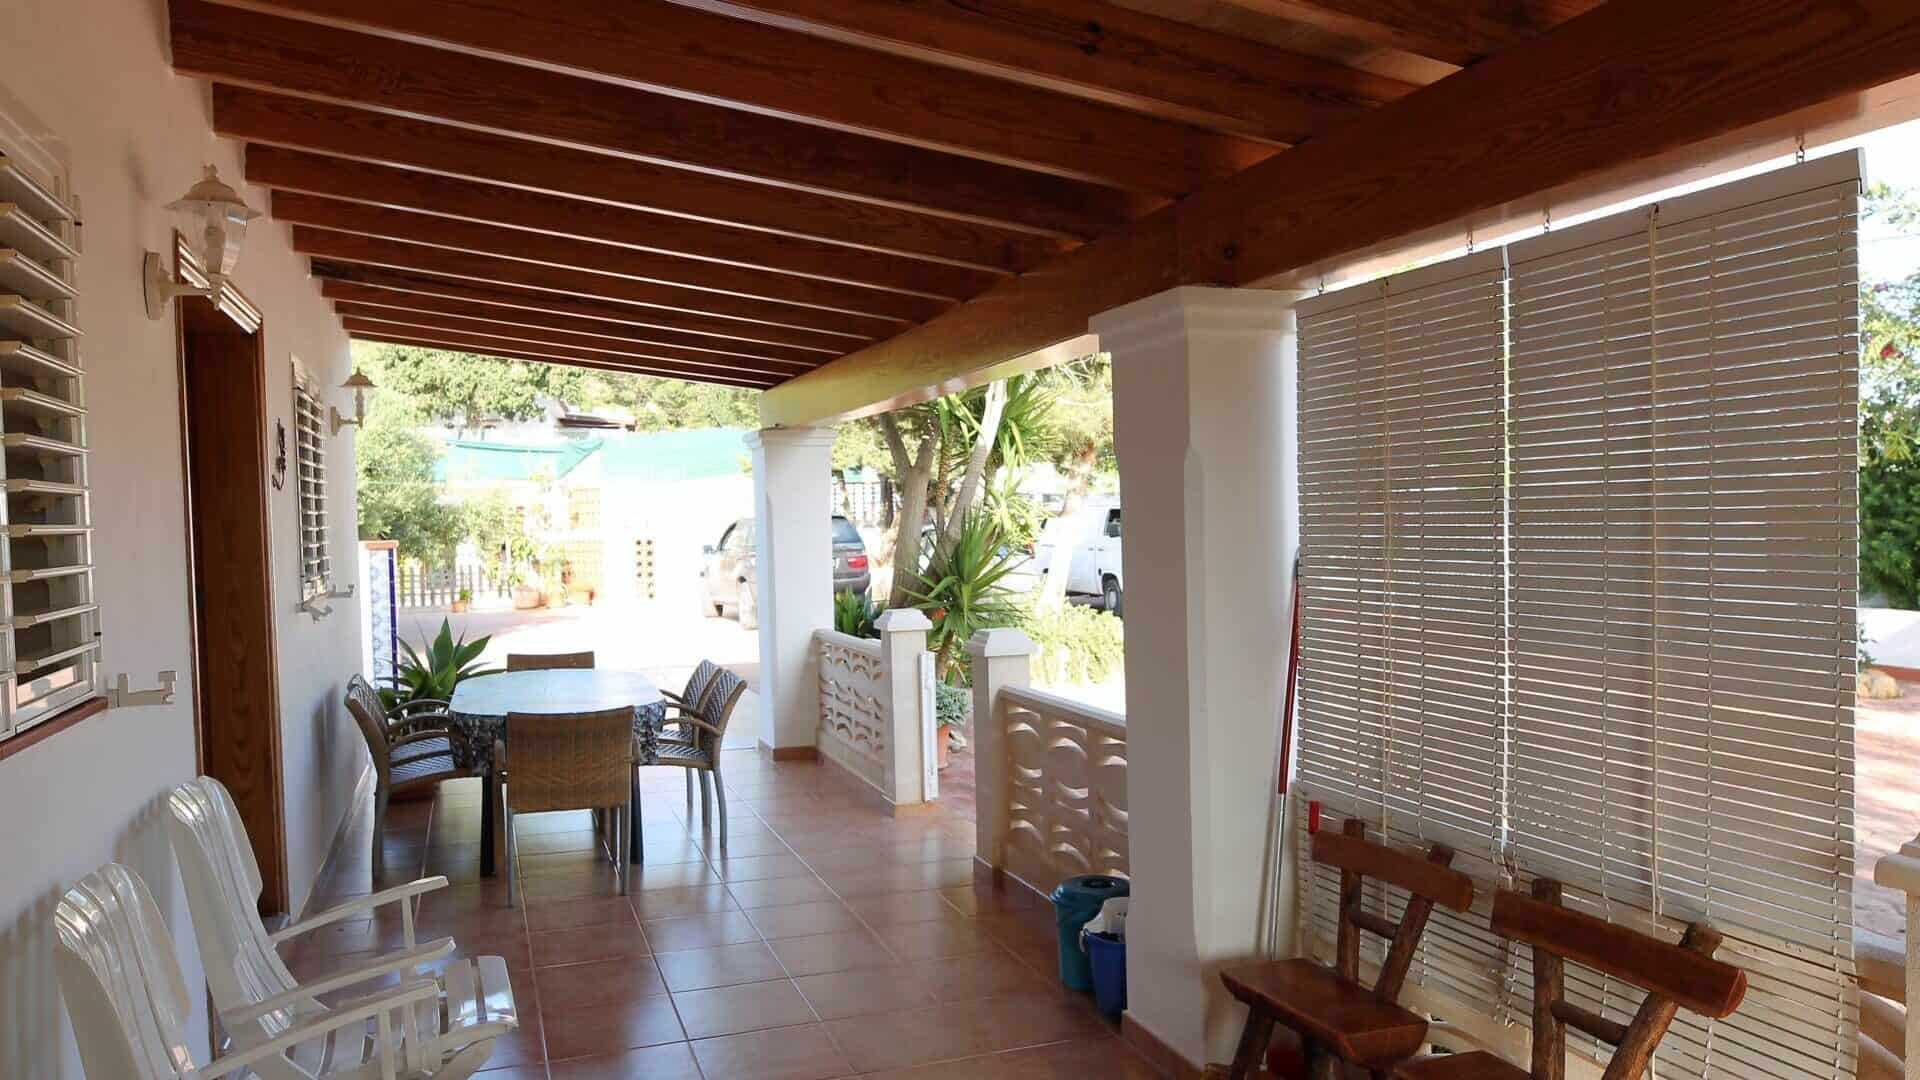 Sa Caleta Ibiza house for sale with swimming pool